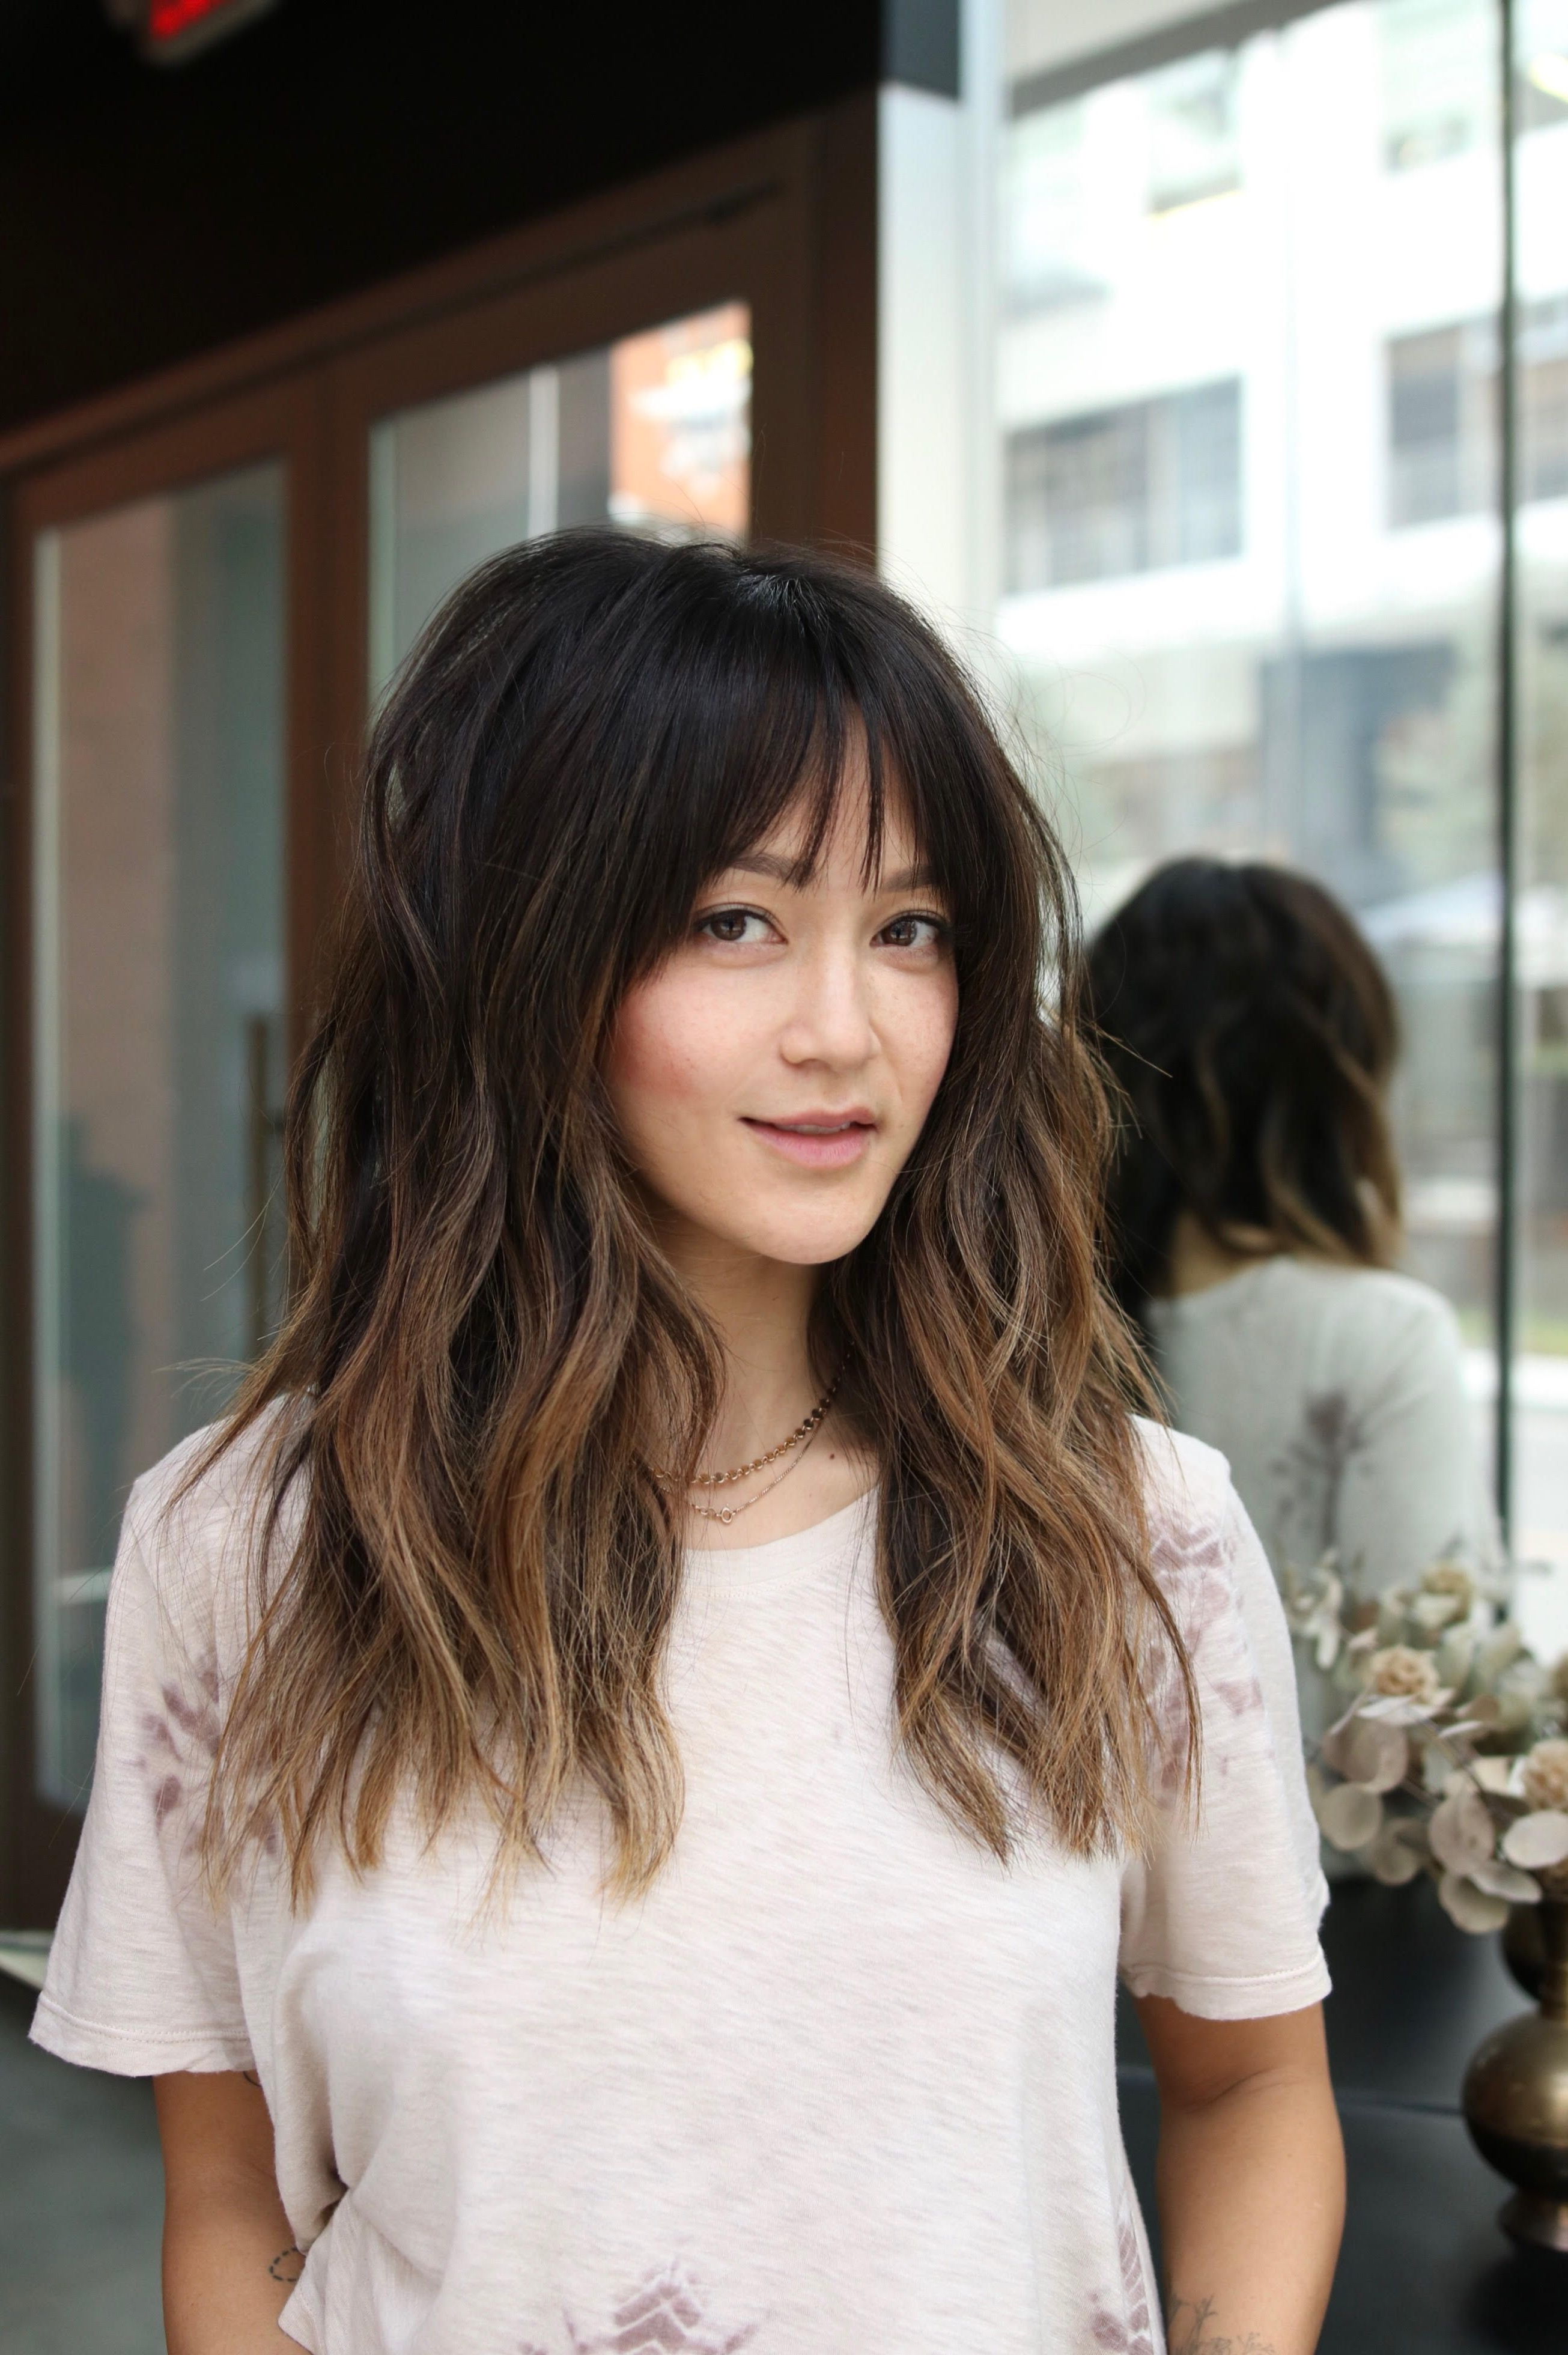 Trendy Spring Haircut Ideas To Inspire Fresh 2019 Look With 2018 Long Choppy Haircuts With A Sprinkling Of Layers (View 10 of 20)